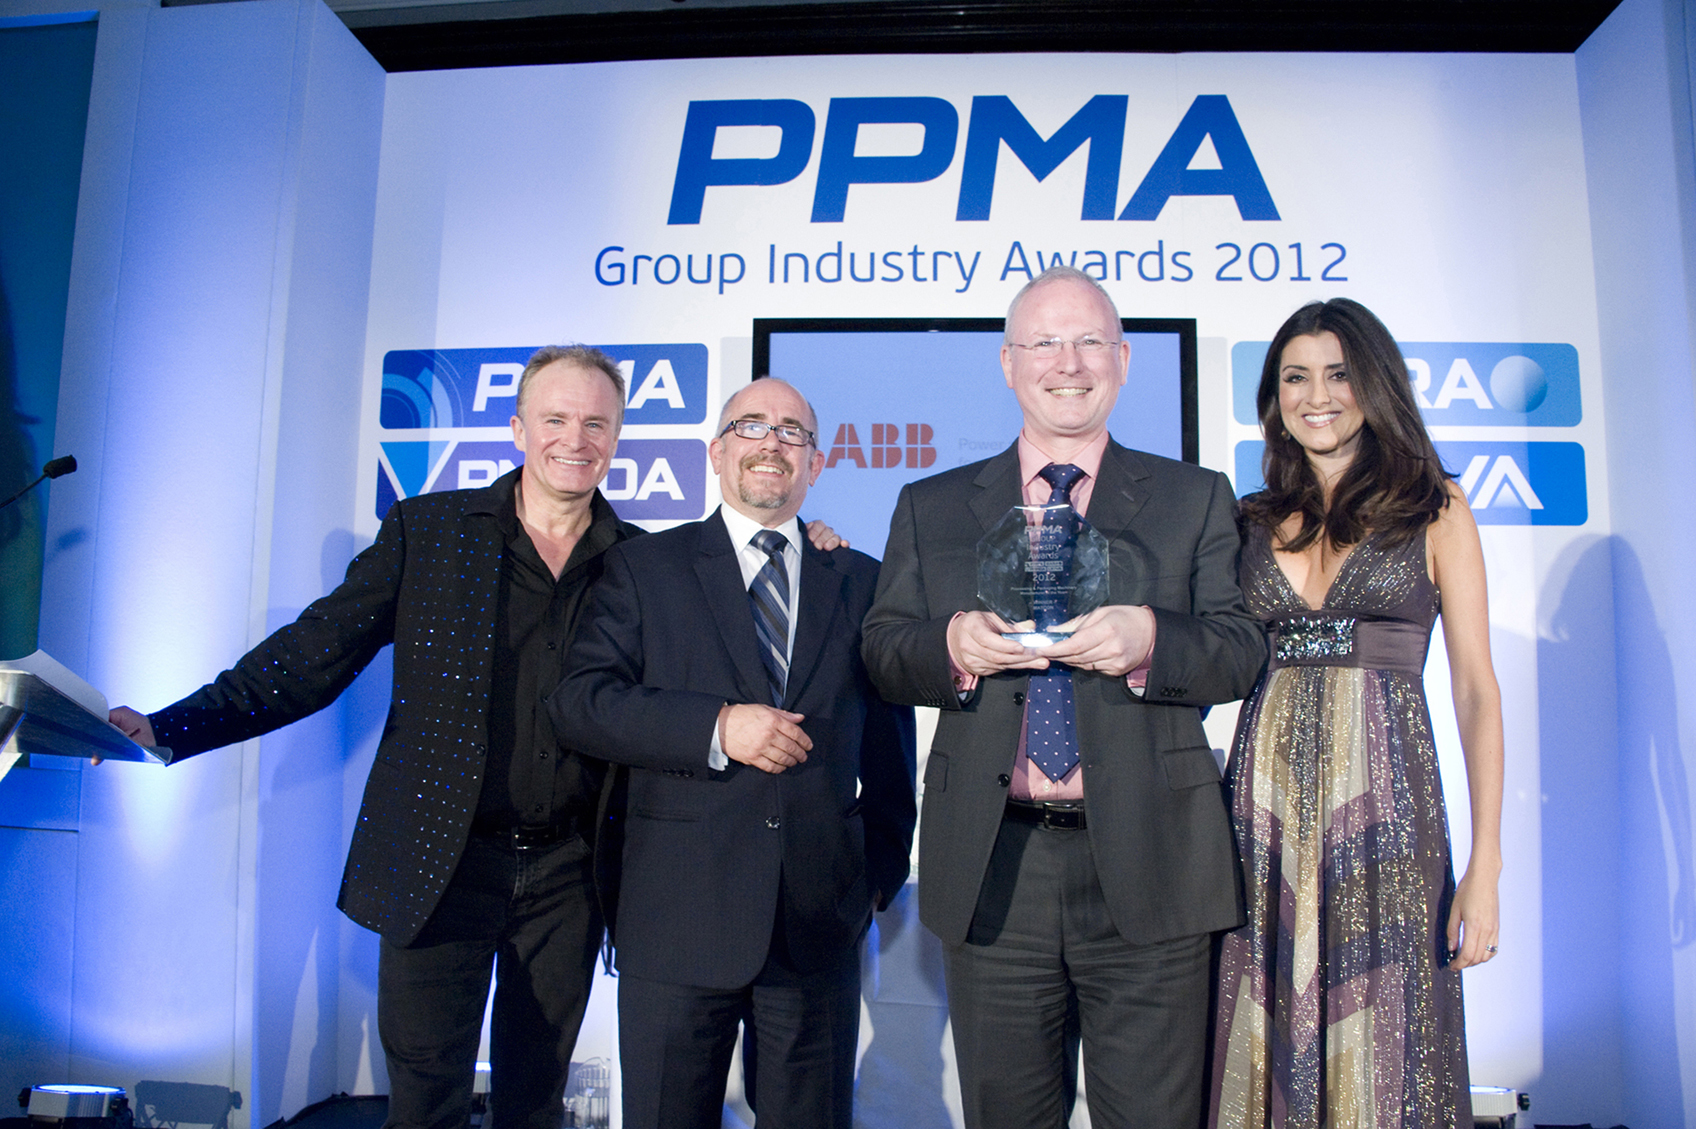 Double success for Matcon at the PPMA Awards